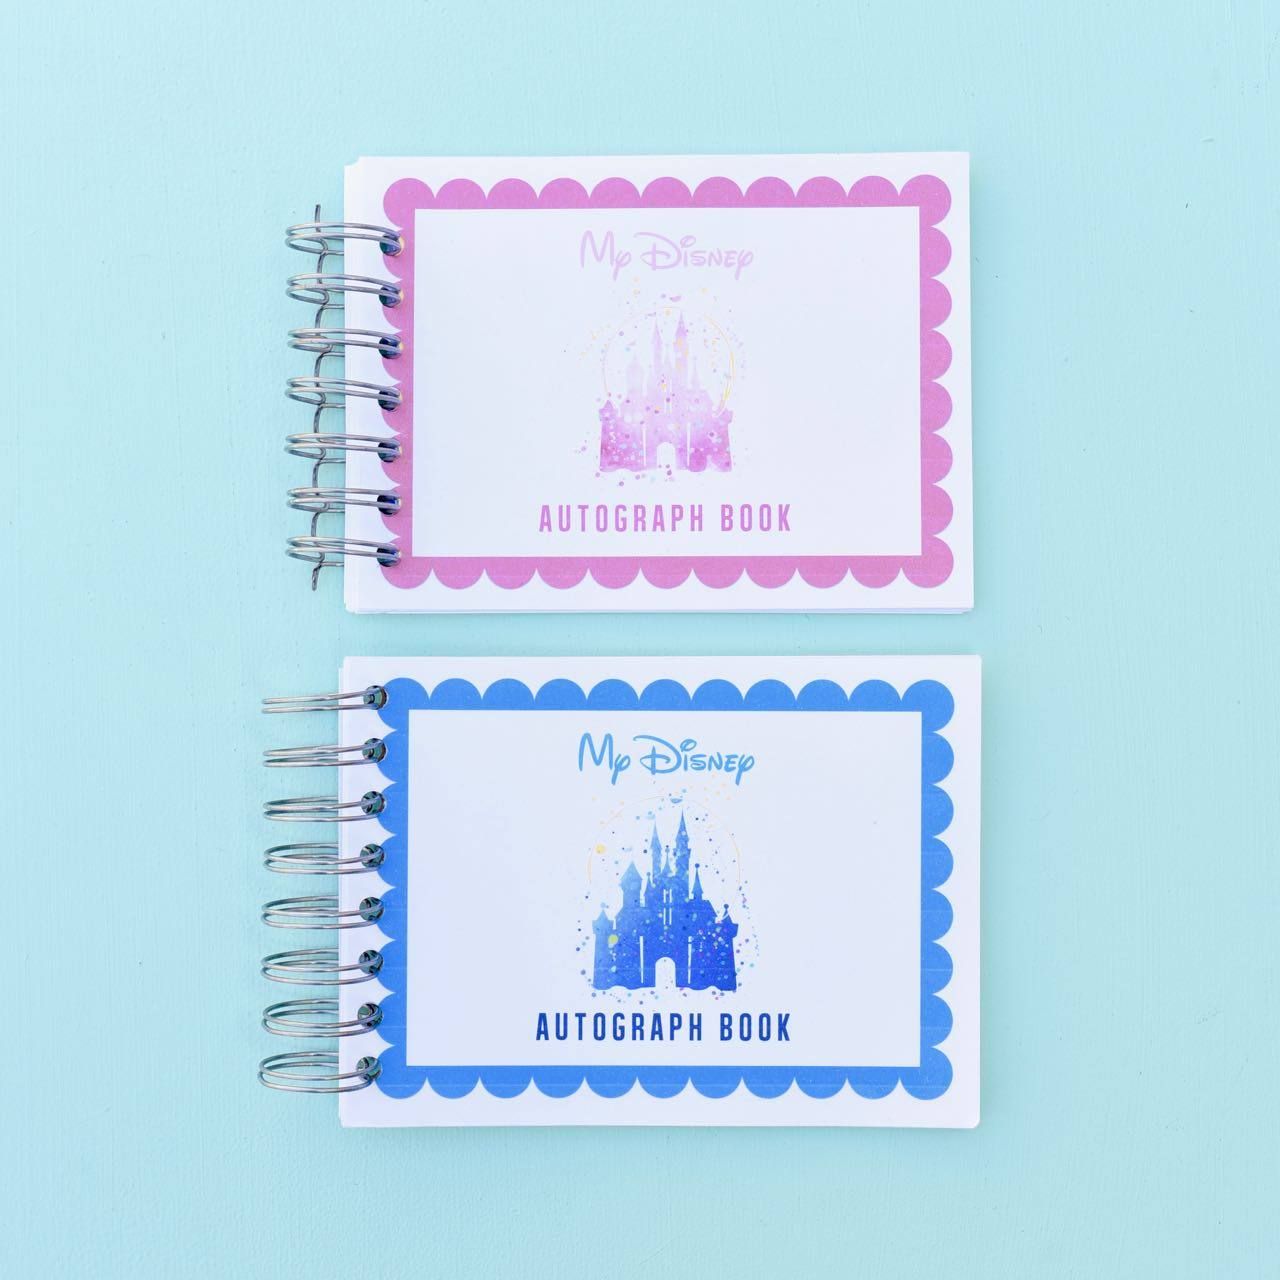 graphic regarding Printable Disney Autograph Book known as Totally free Printable Disney Autograph E-book